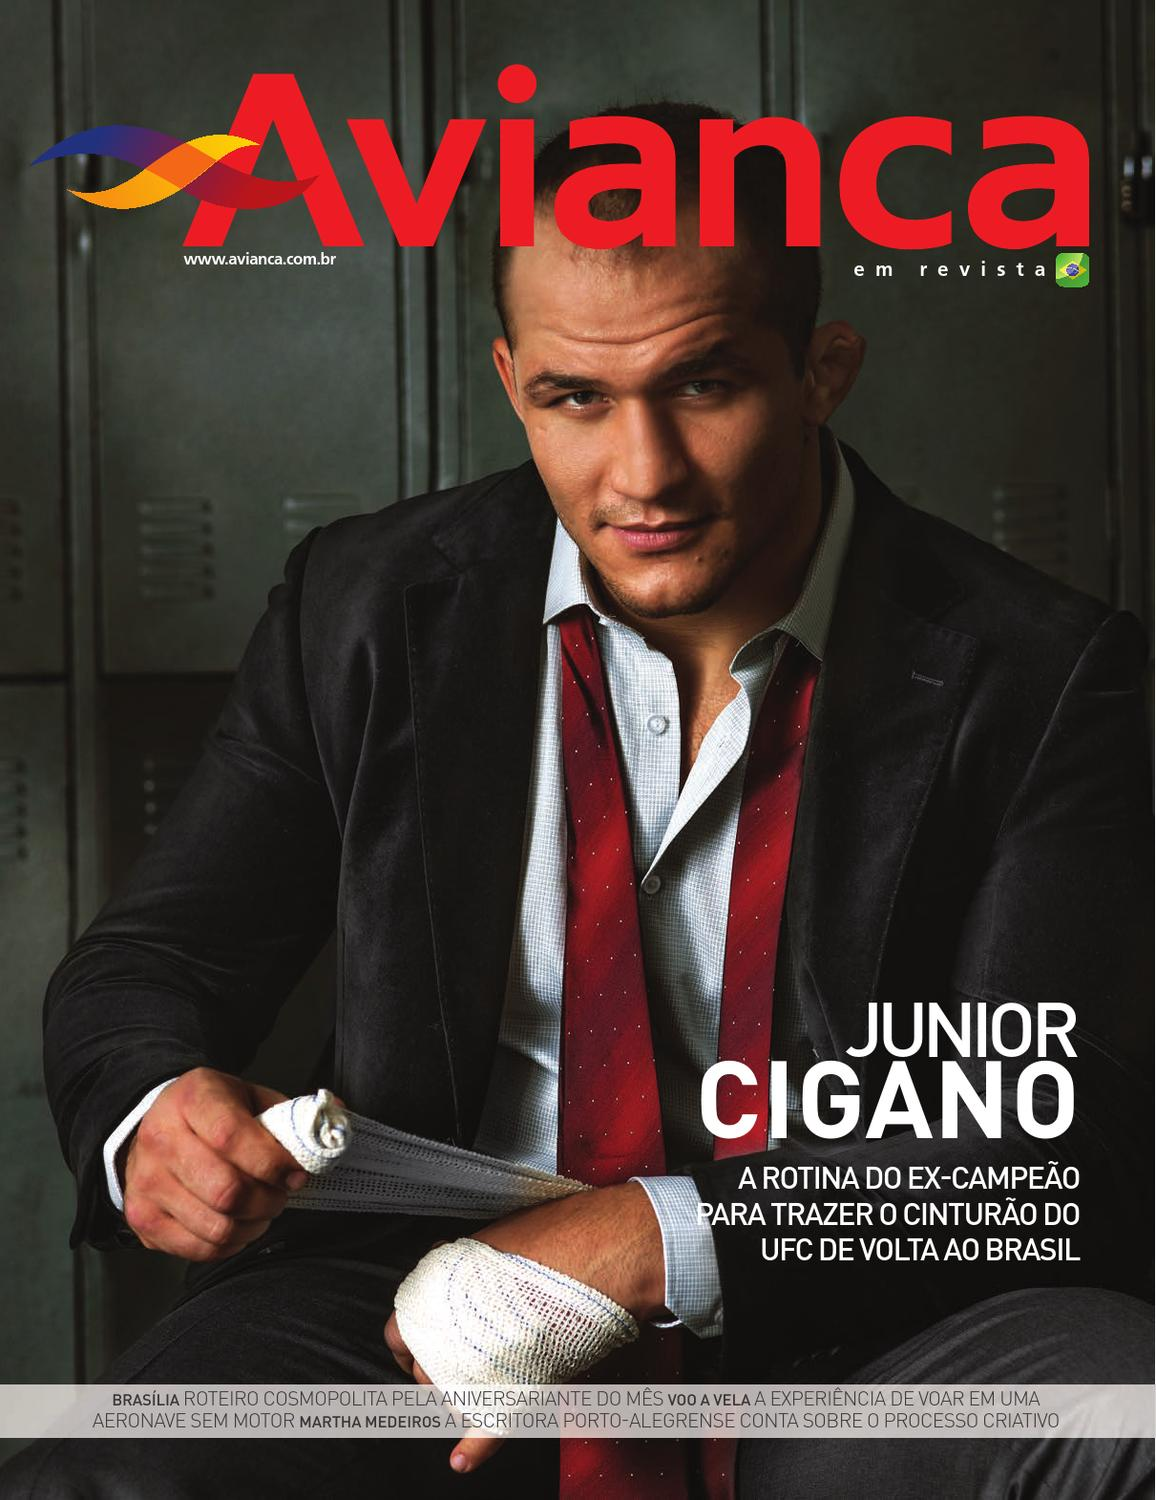 33 - Junior Cigano by Media Onboard - issuu b569297e6f